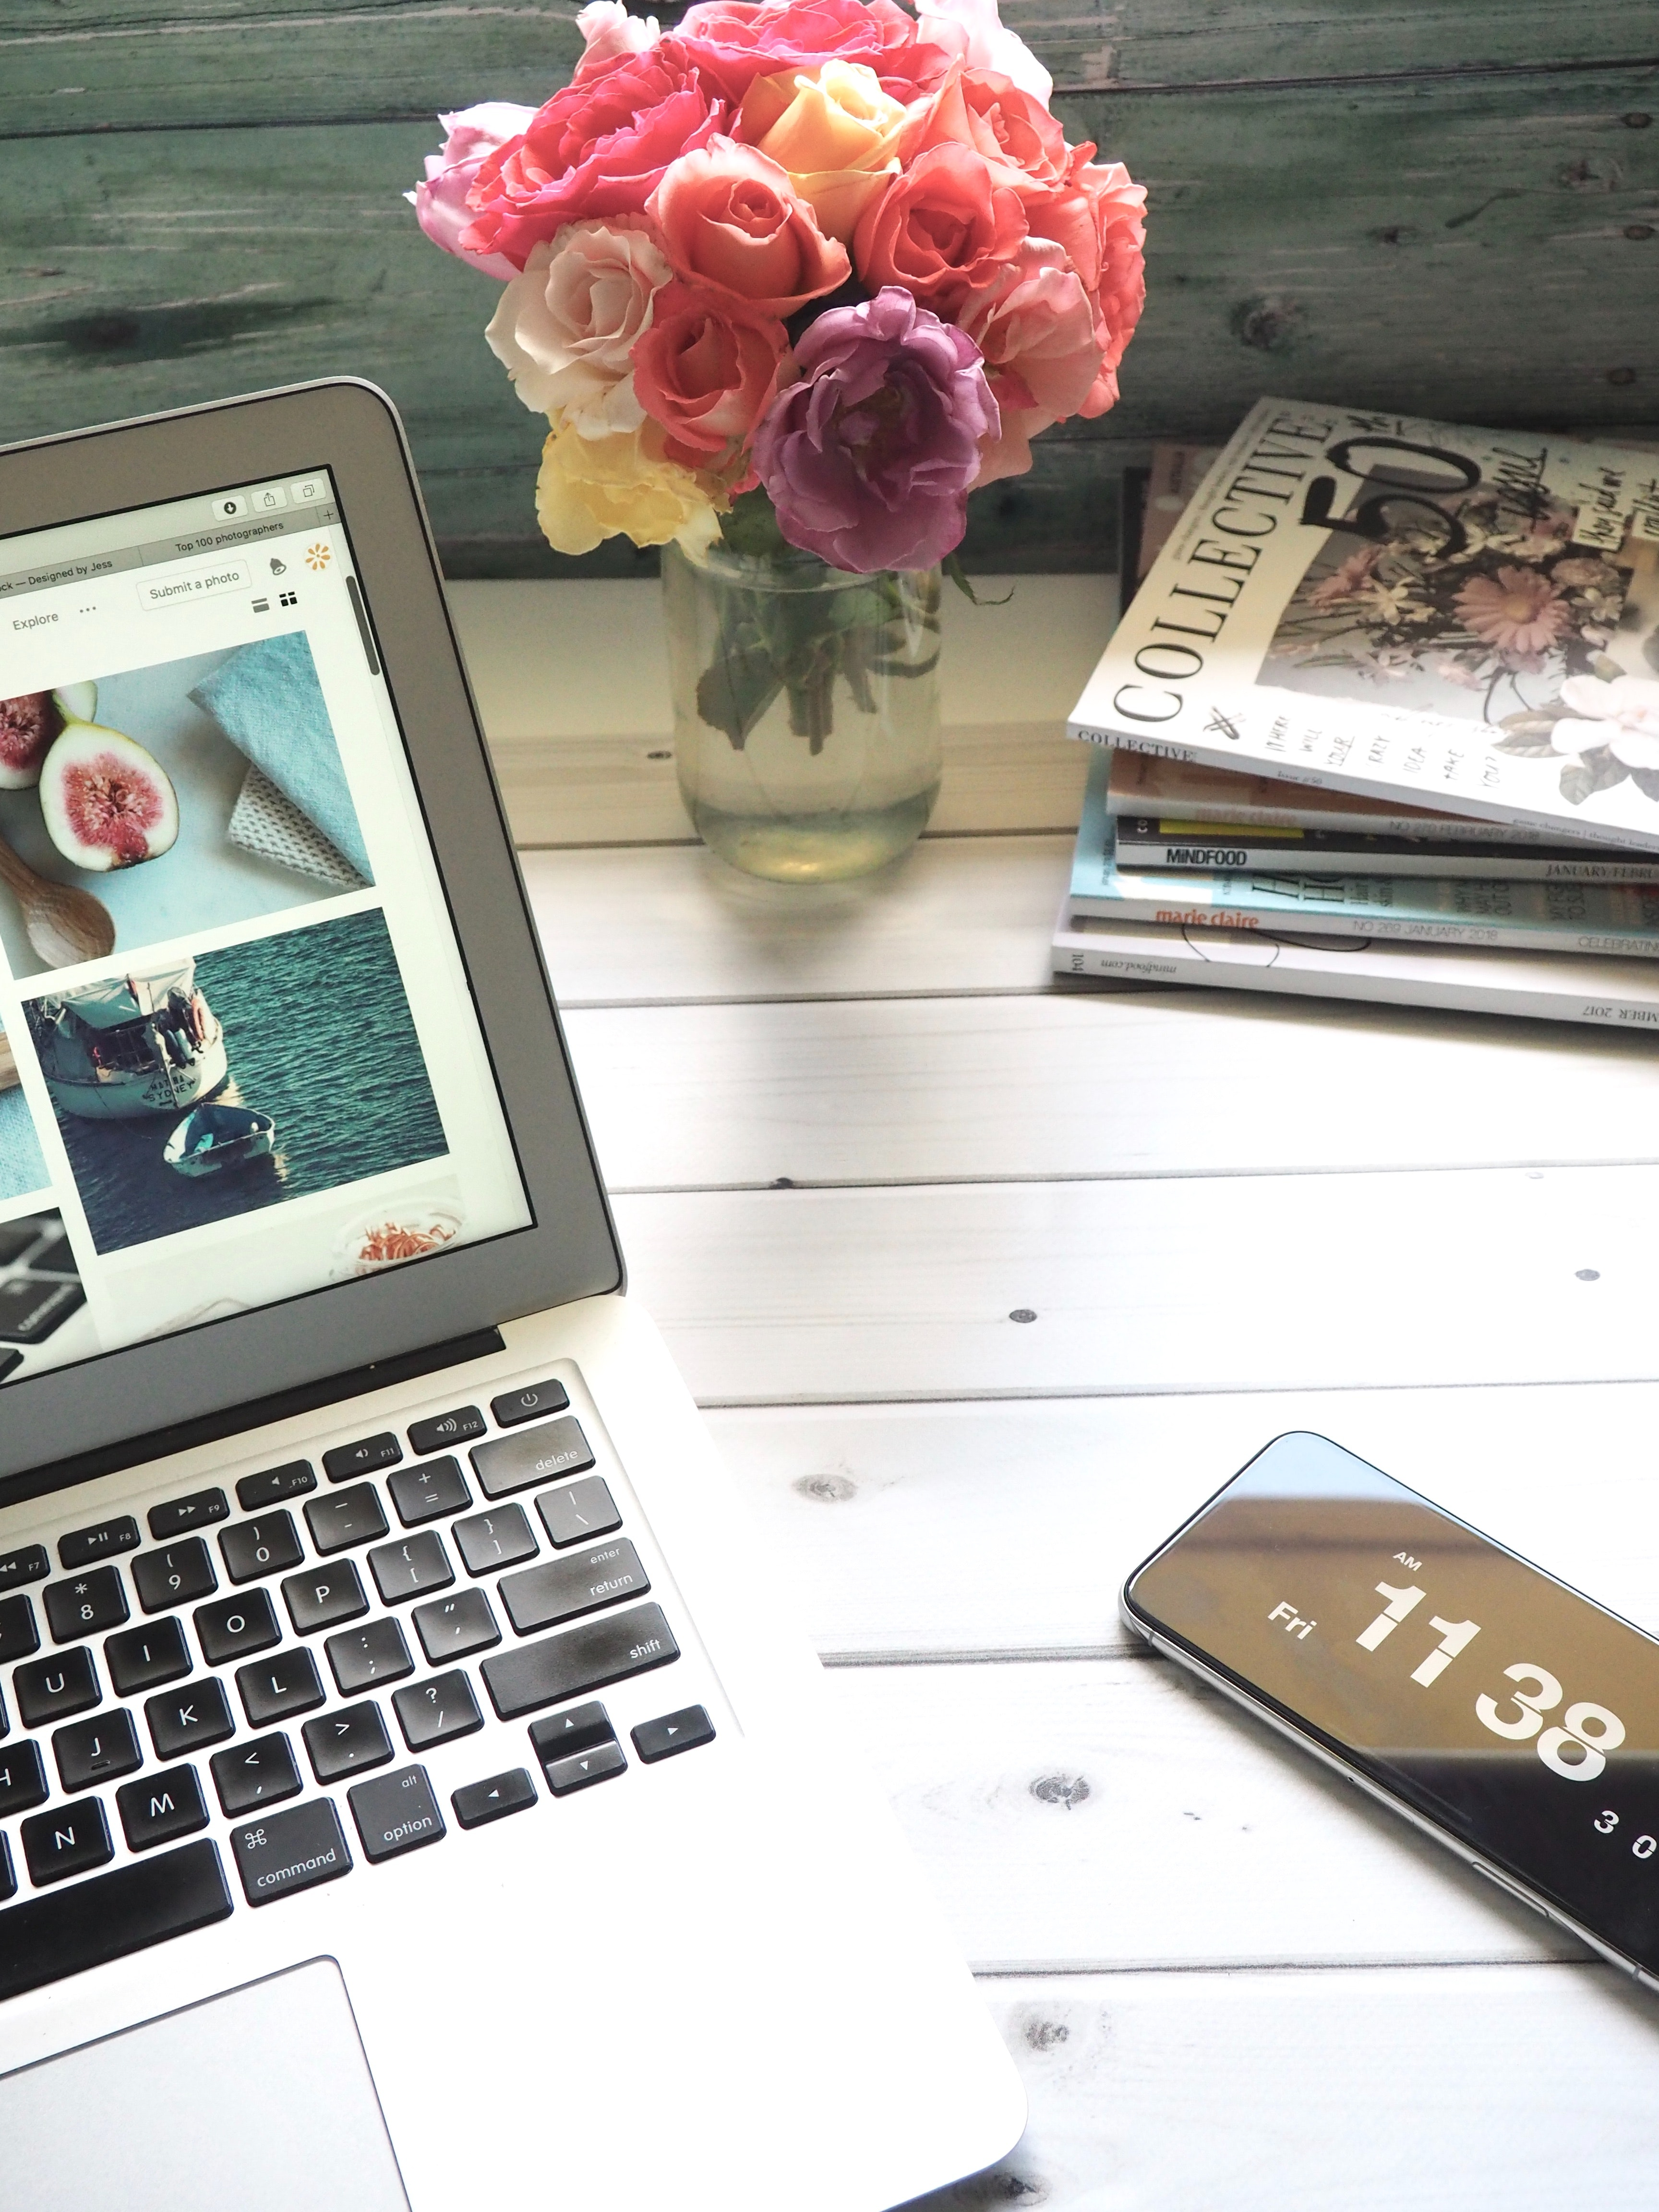 Macbook Air, Flower Bouquet and Magazines on White Table, Magazine, Workplace, Working, Work, HQ Photo